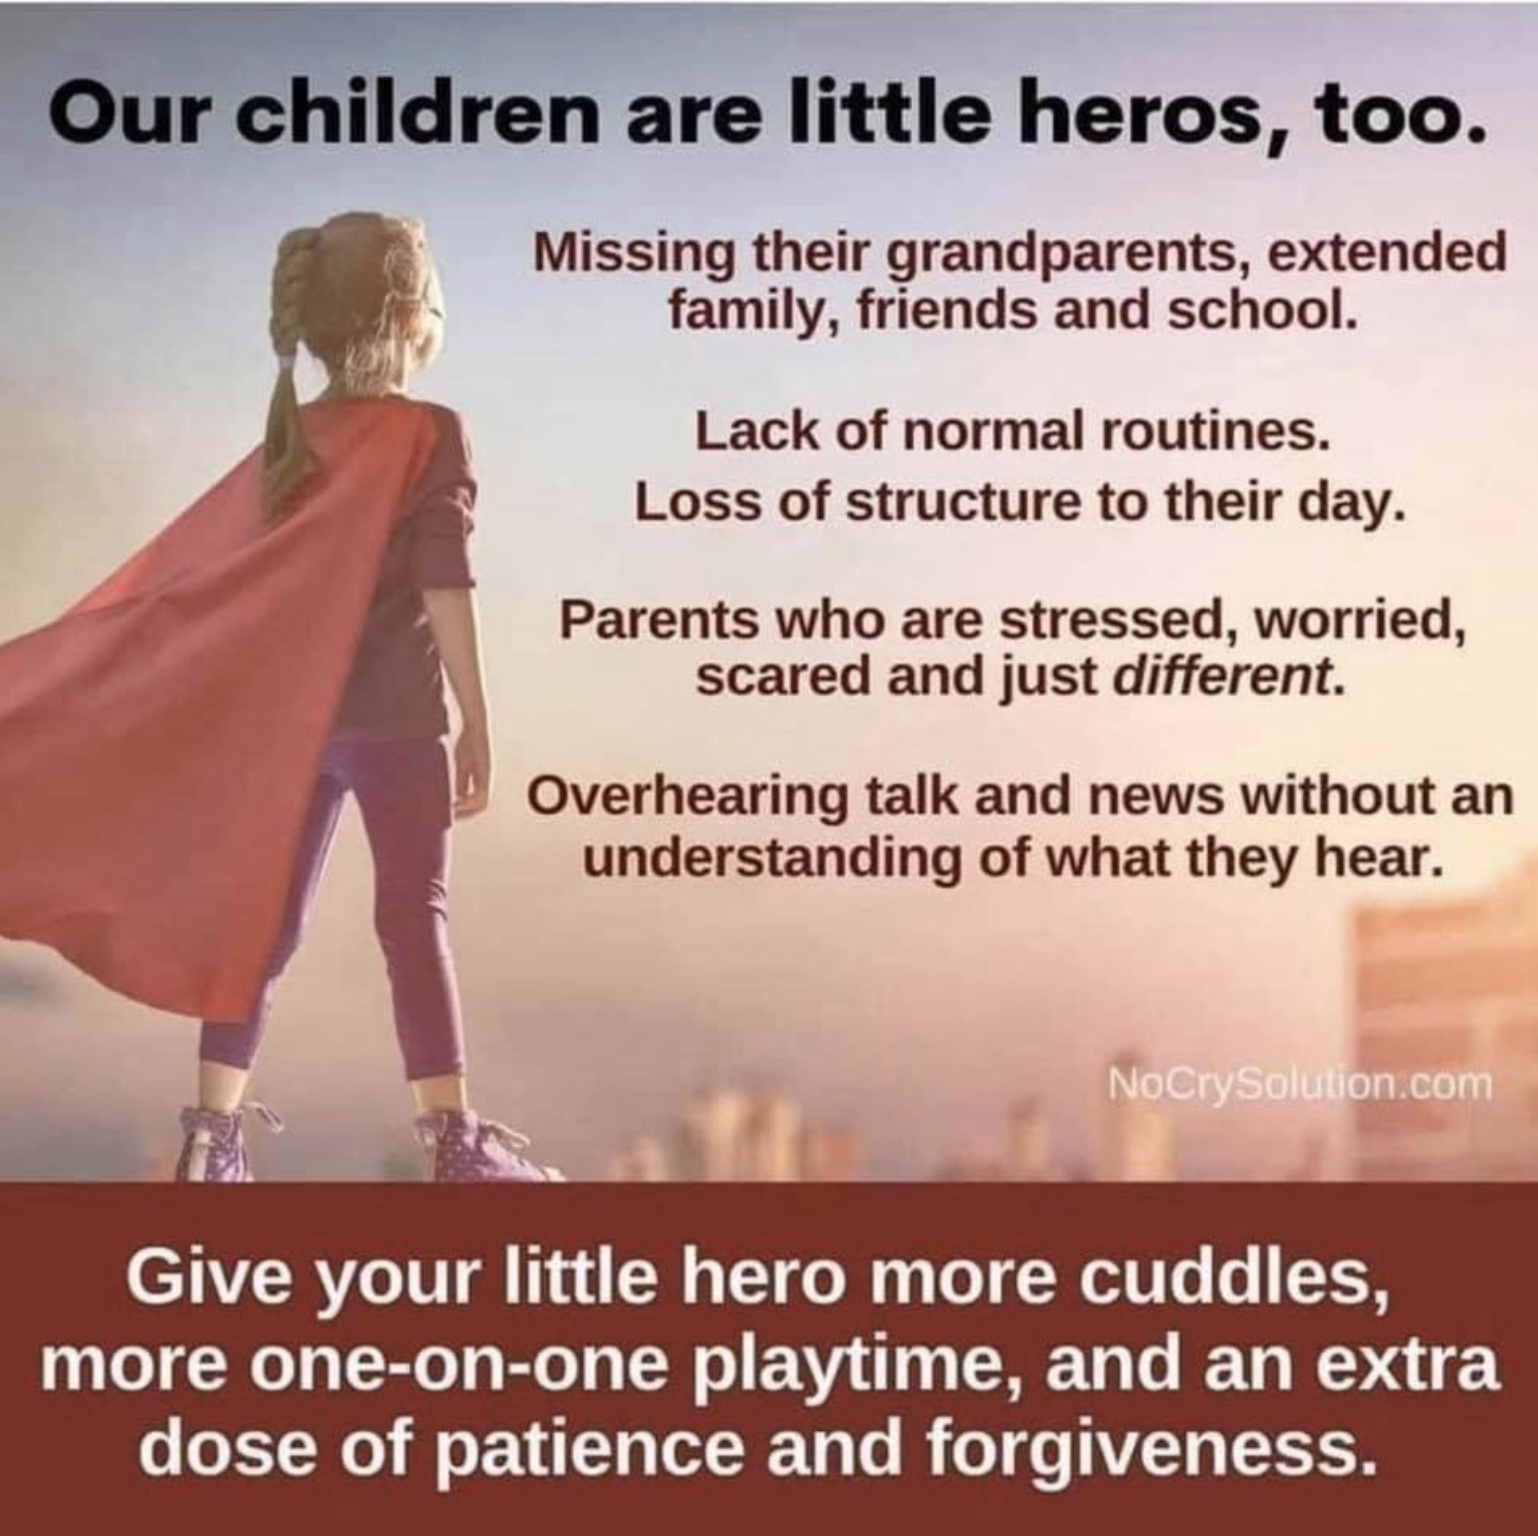 Our Little Heros